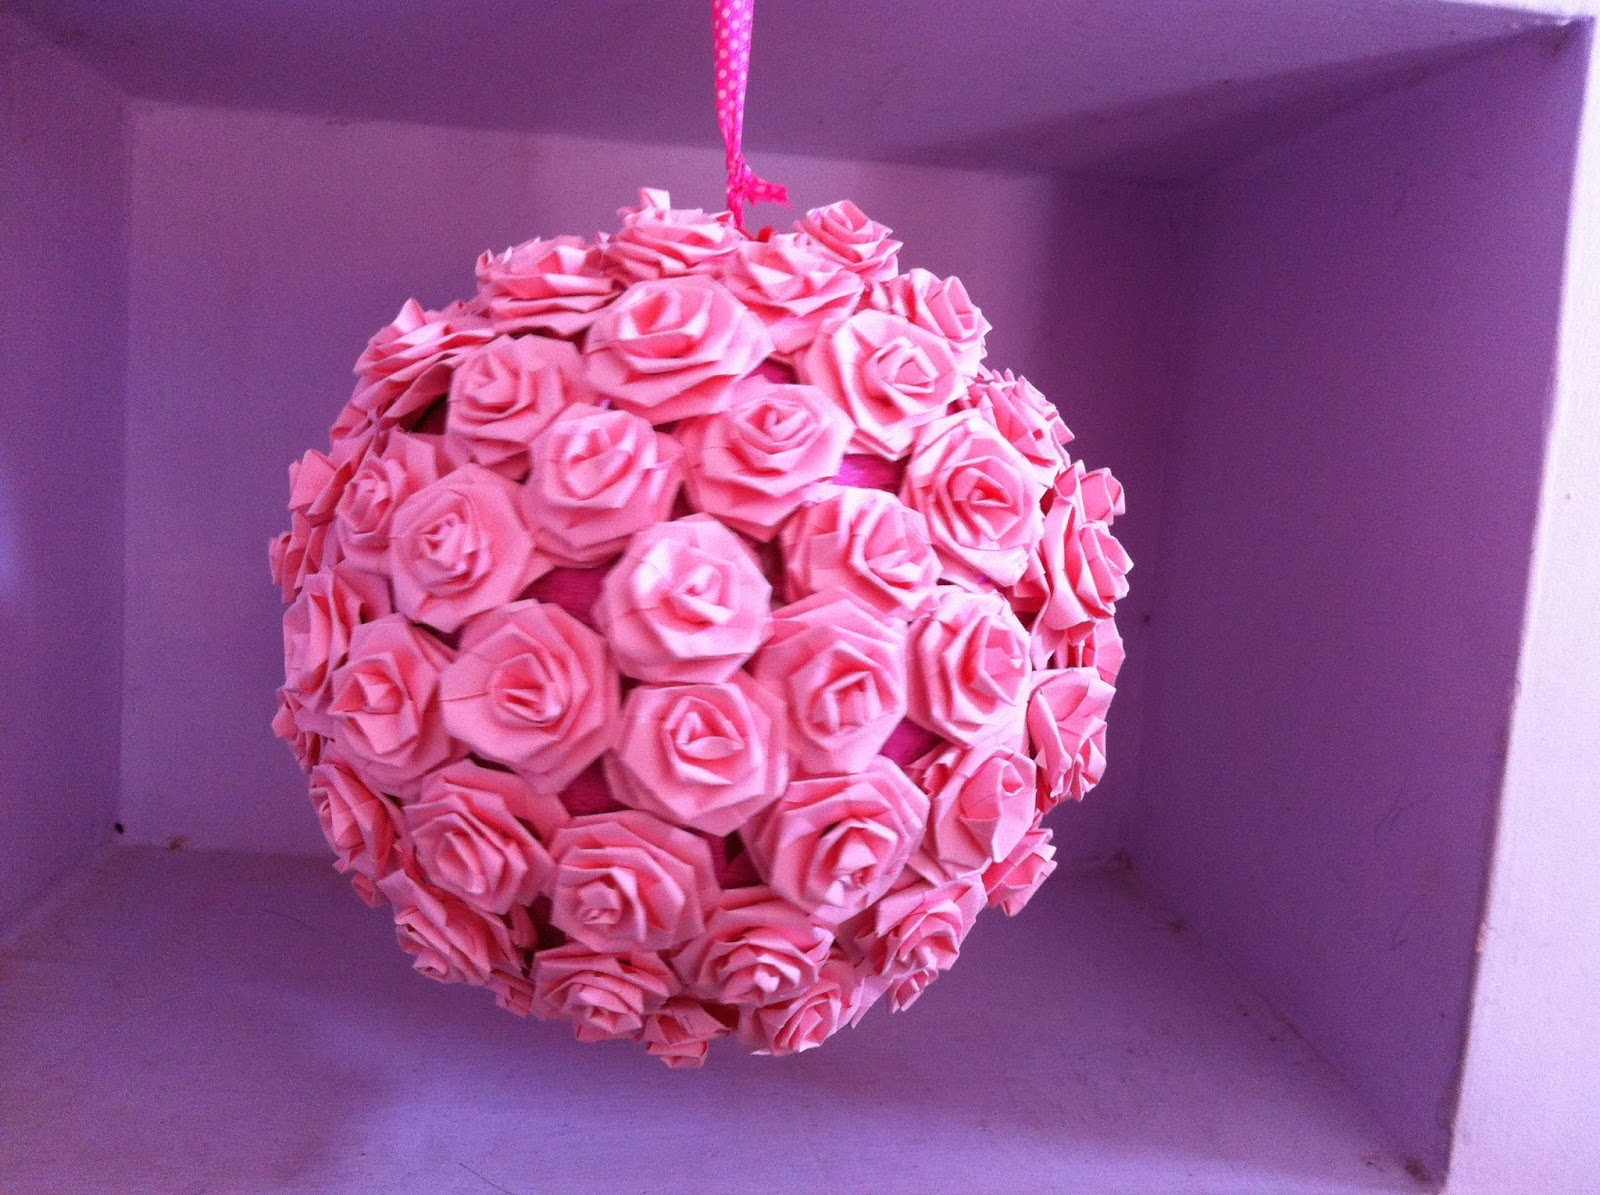 paper roses for sale Roses discount store department store offers great, quality items at low prices, every day roses - the smart way to shop.